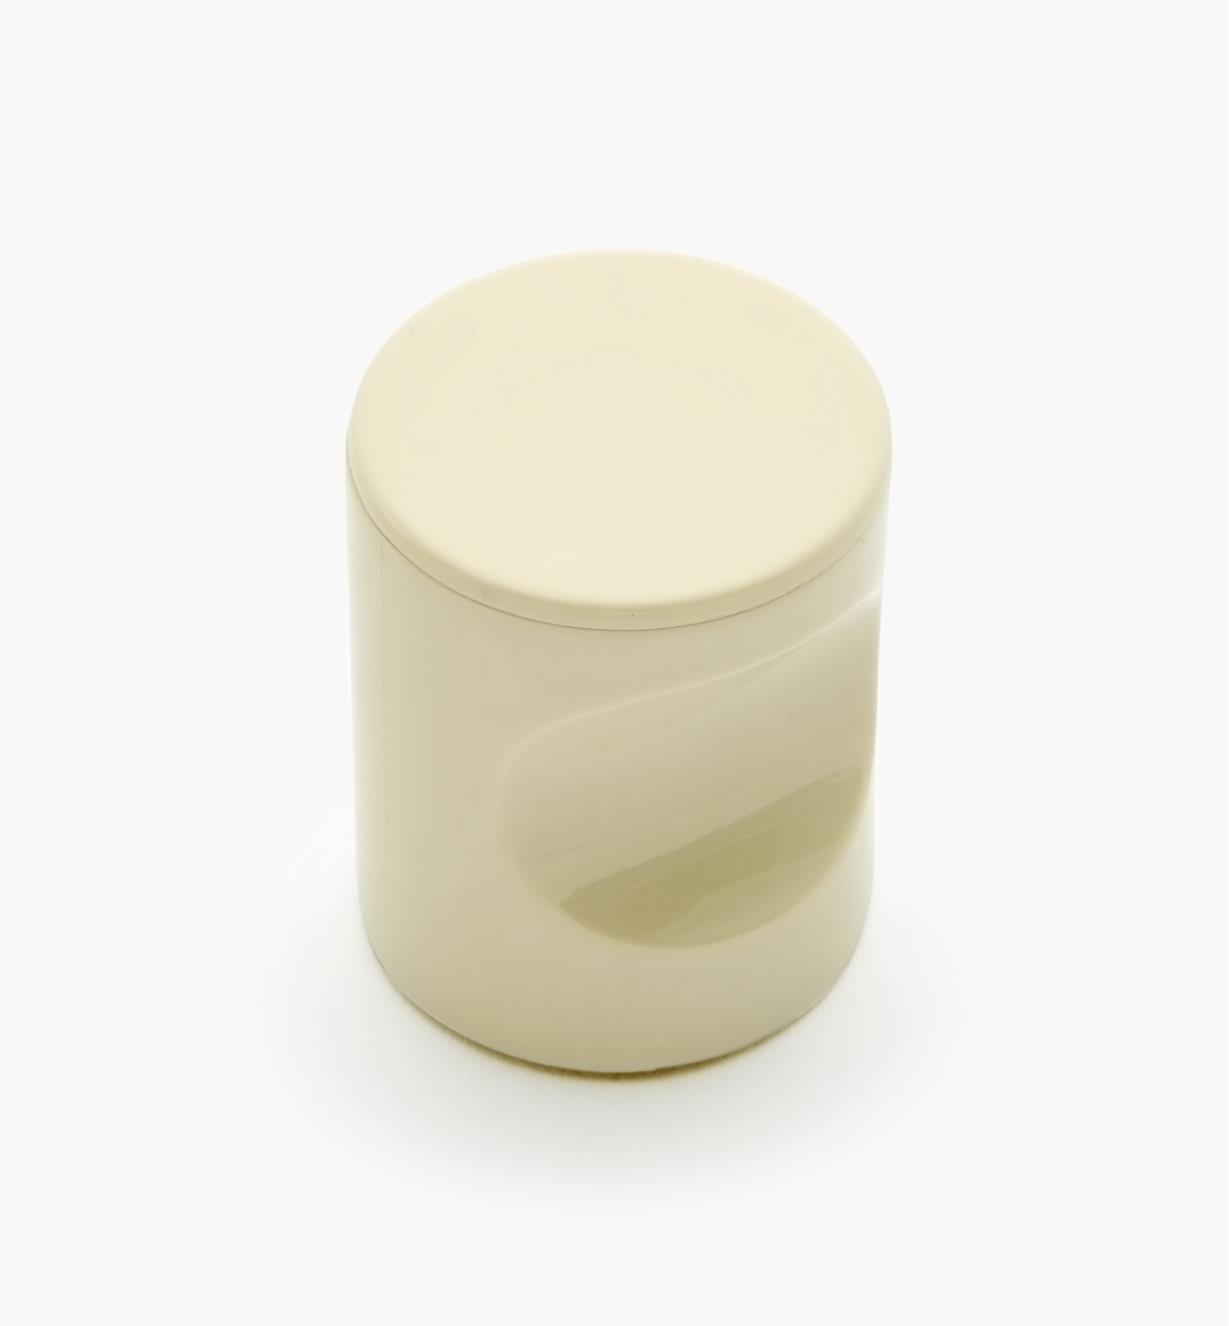 "01W4533 - 23mm x 1 11/16"" Beige Notched Pull/Knob"